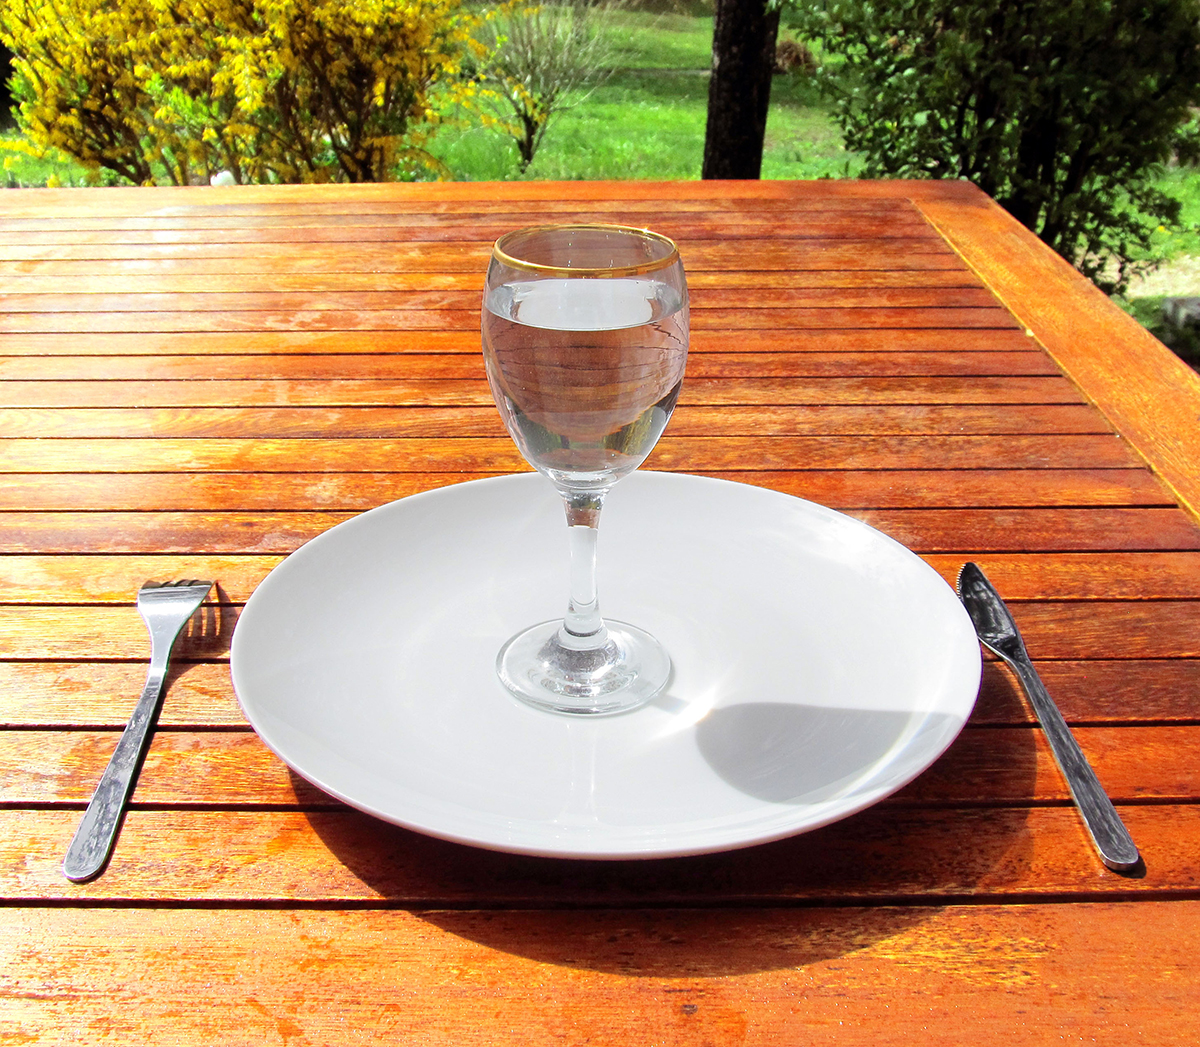 Fasting a glass of water on an empty-plate